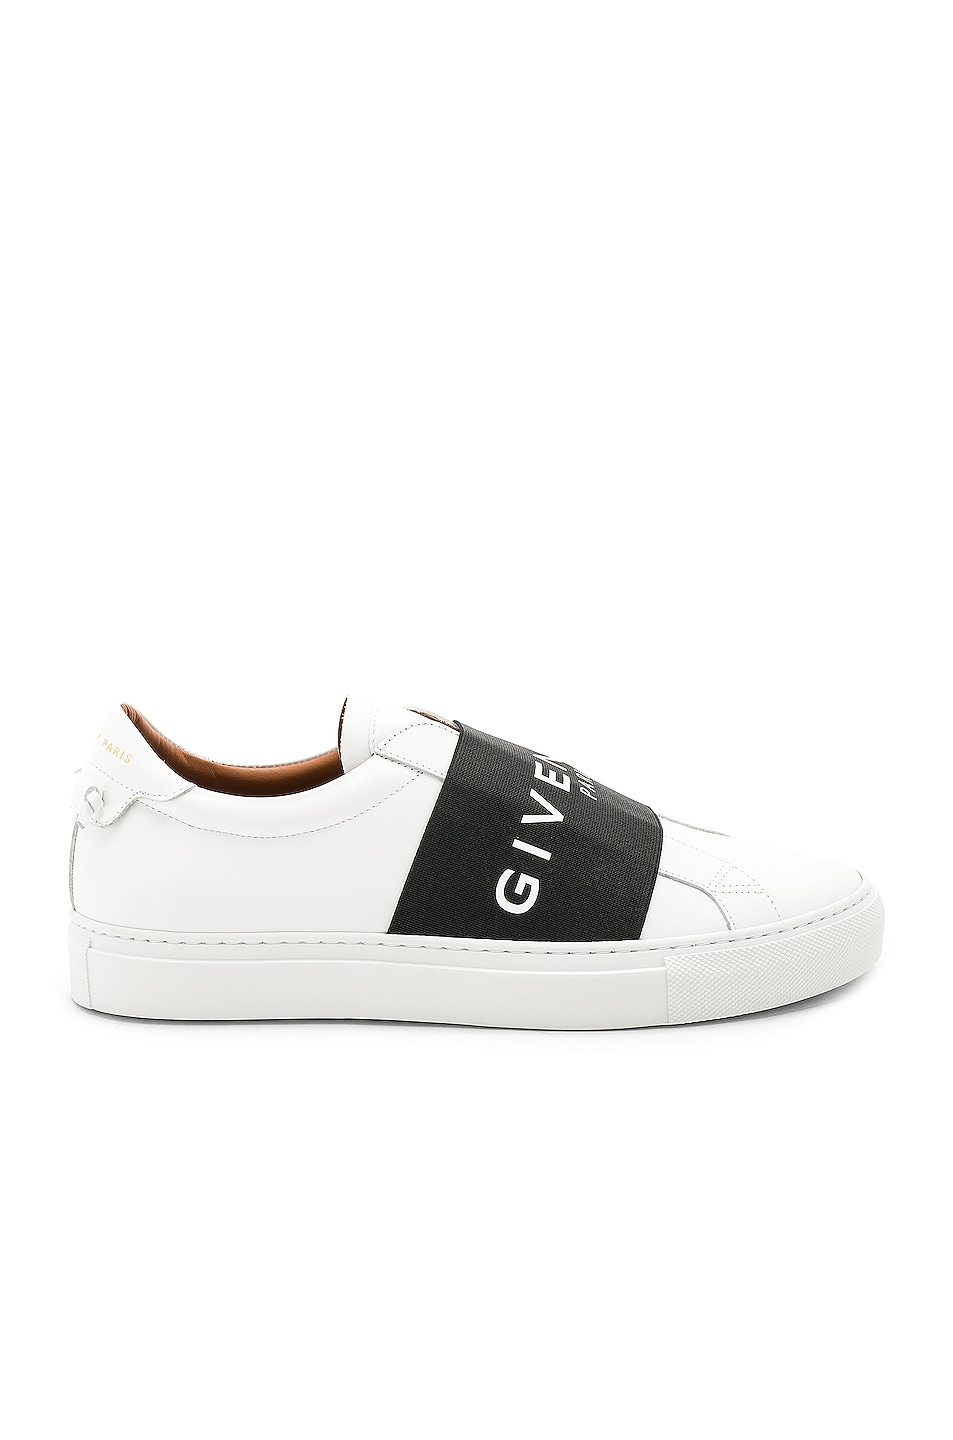 Image 1 of Givenchy Elastic Sneakers in White & Black